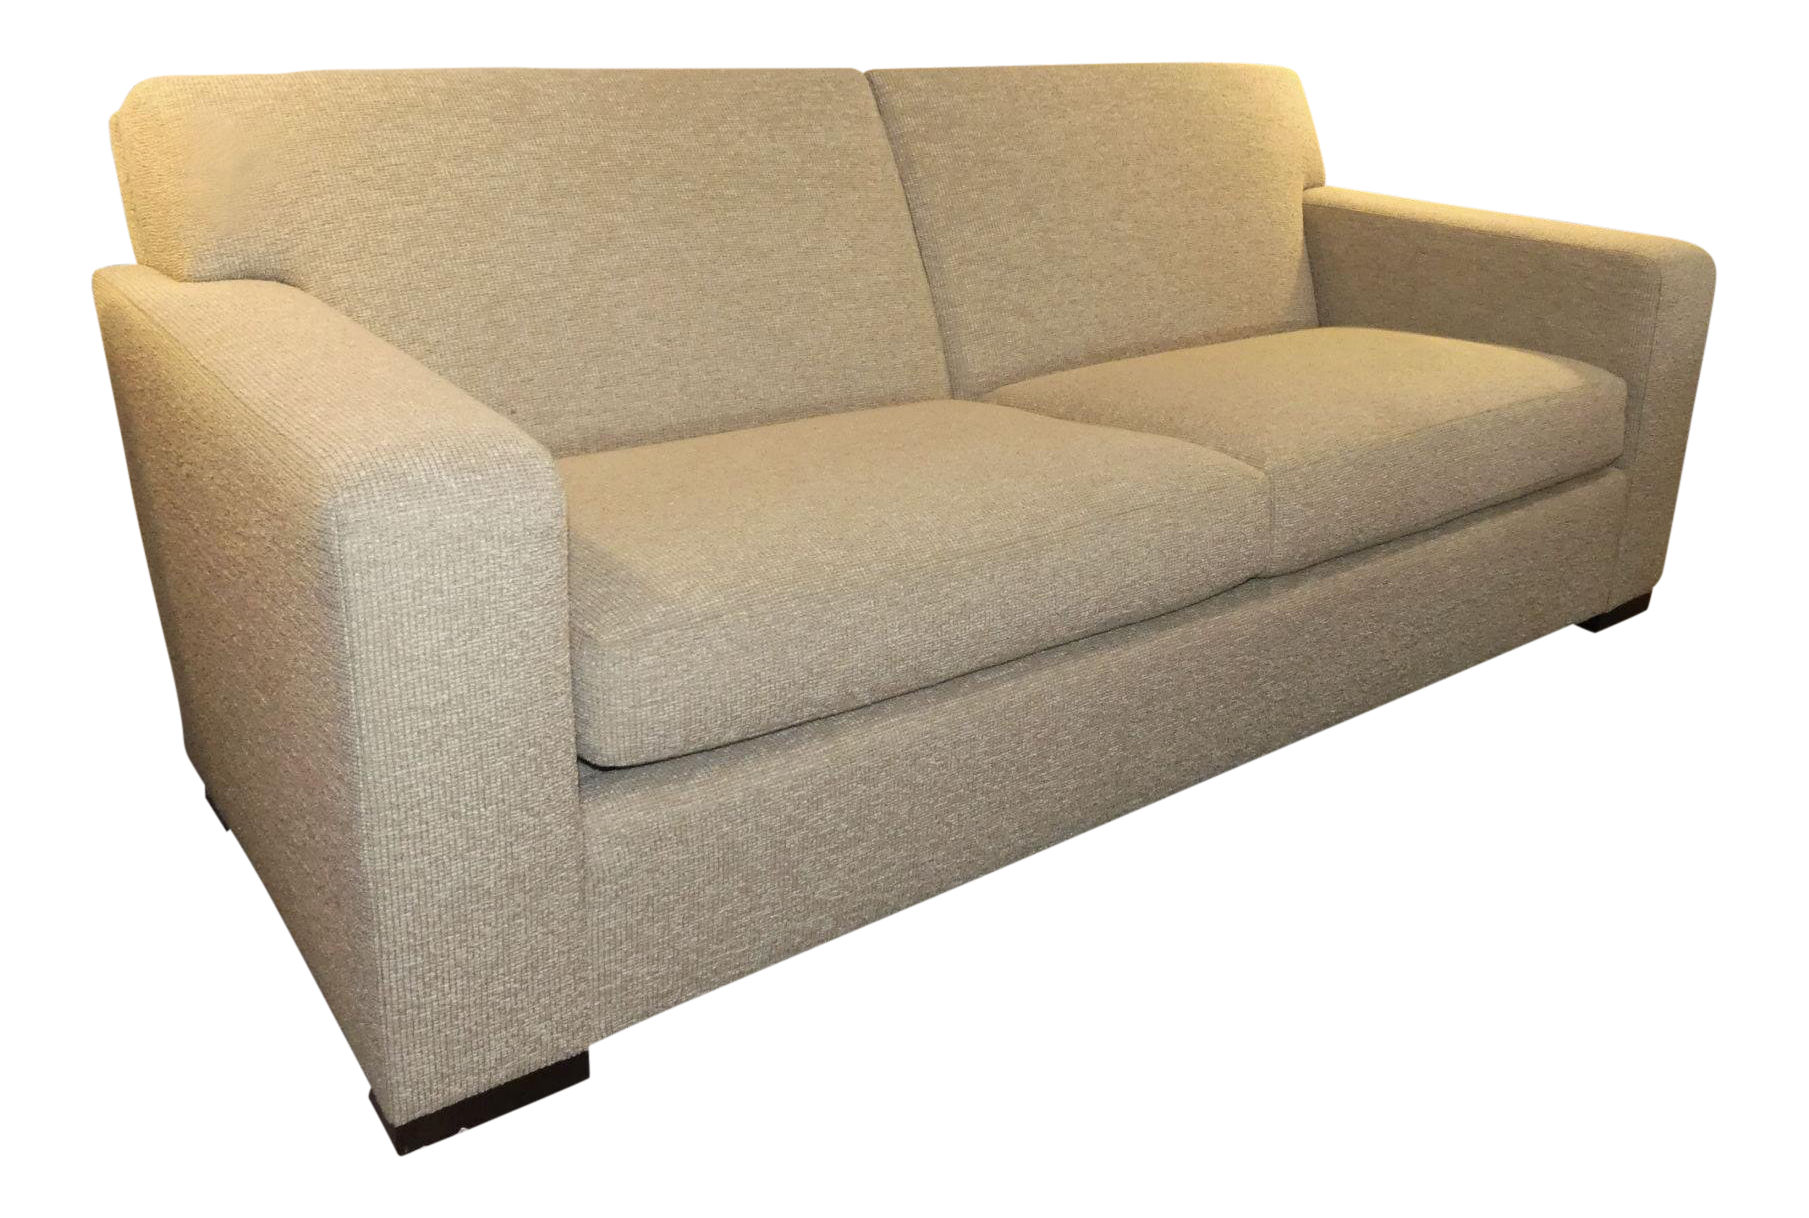 SOLD Donghia Contemporary Track Arm Sofa